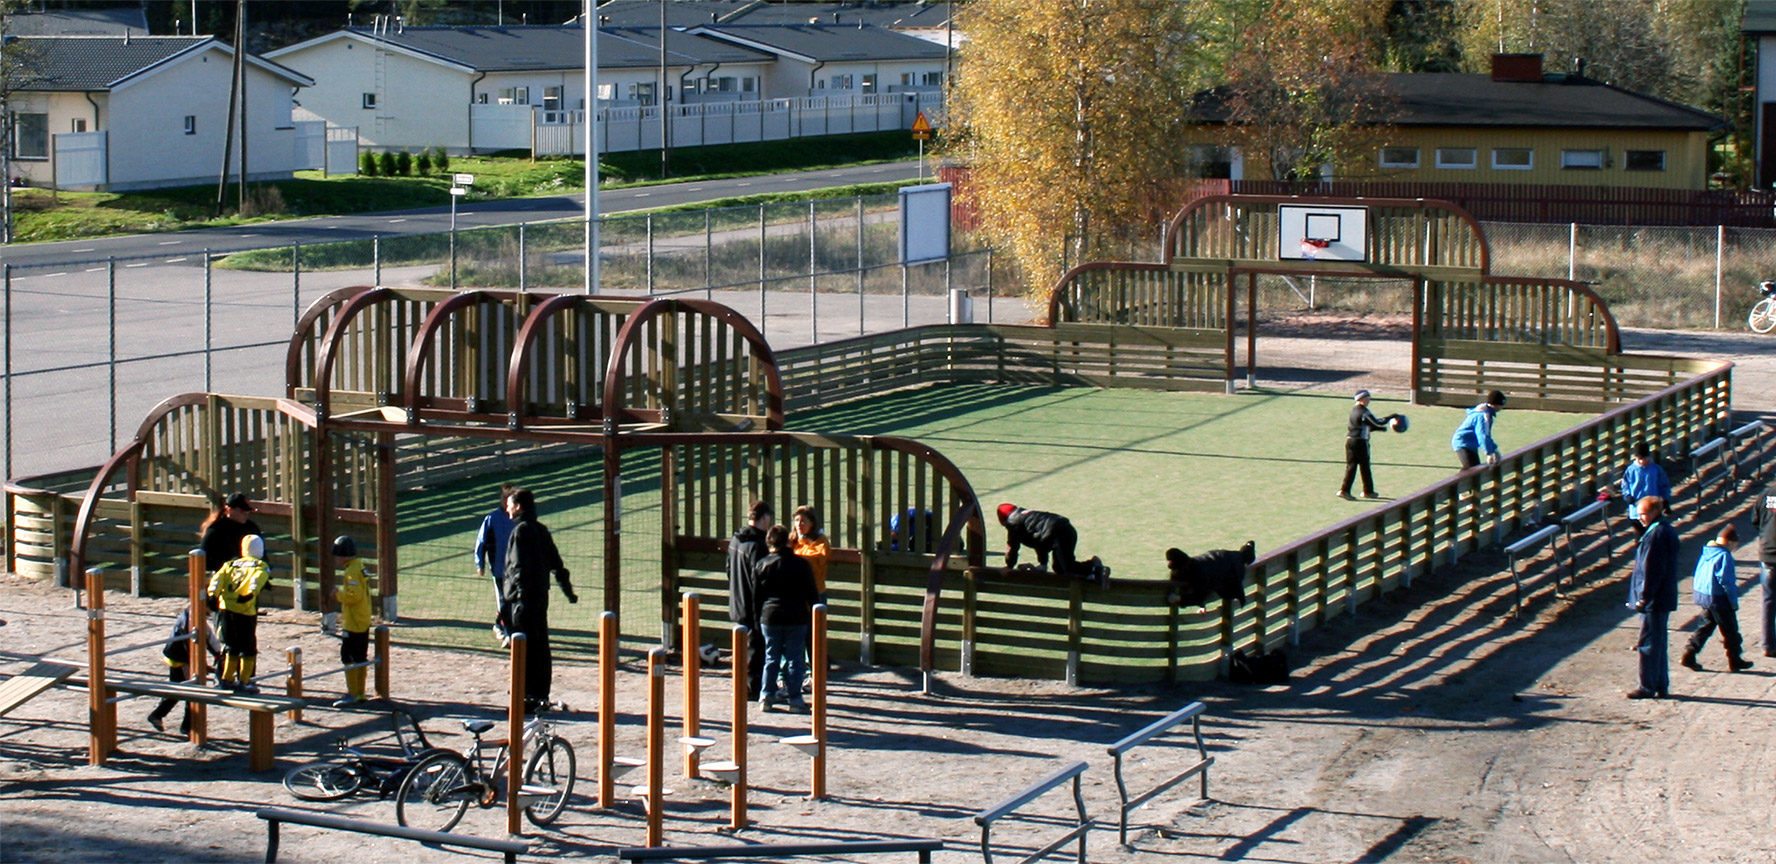 outdoor ball games arena in local public park